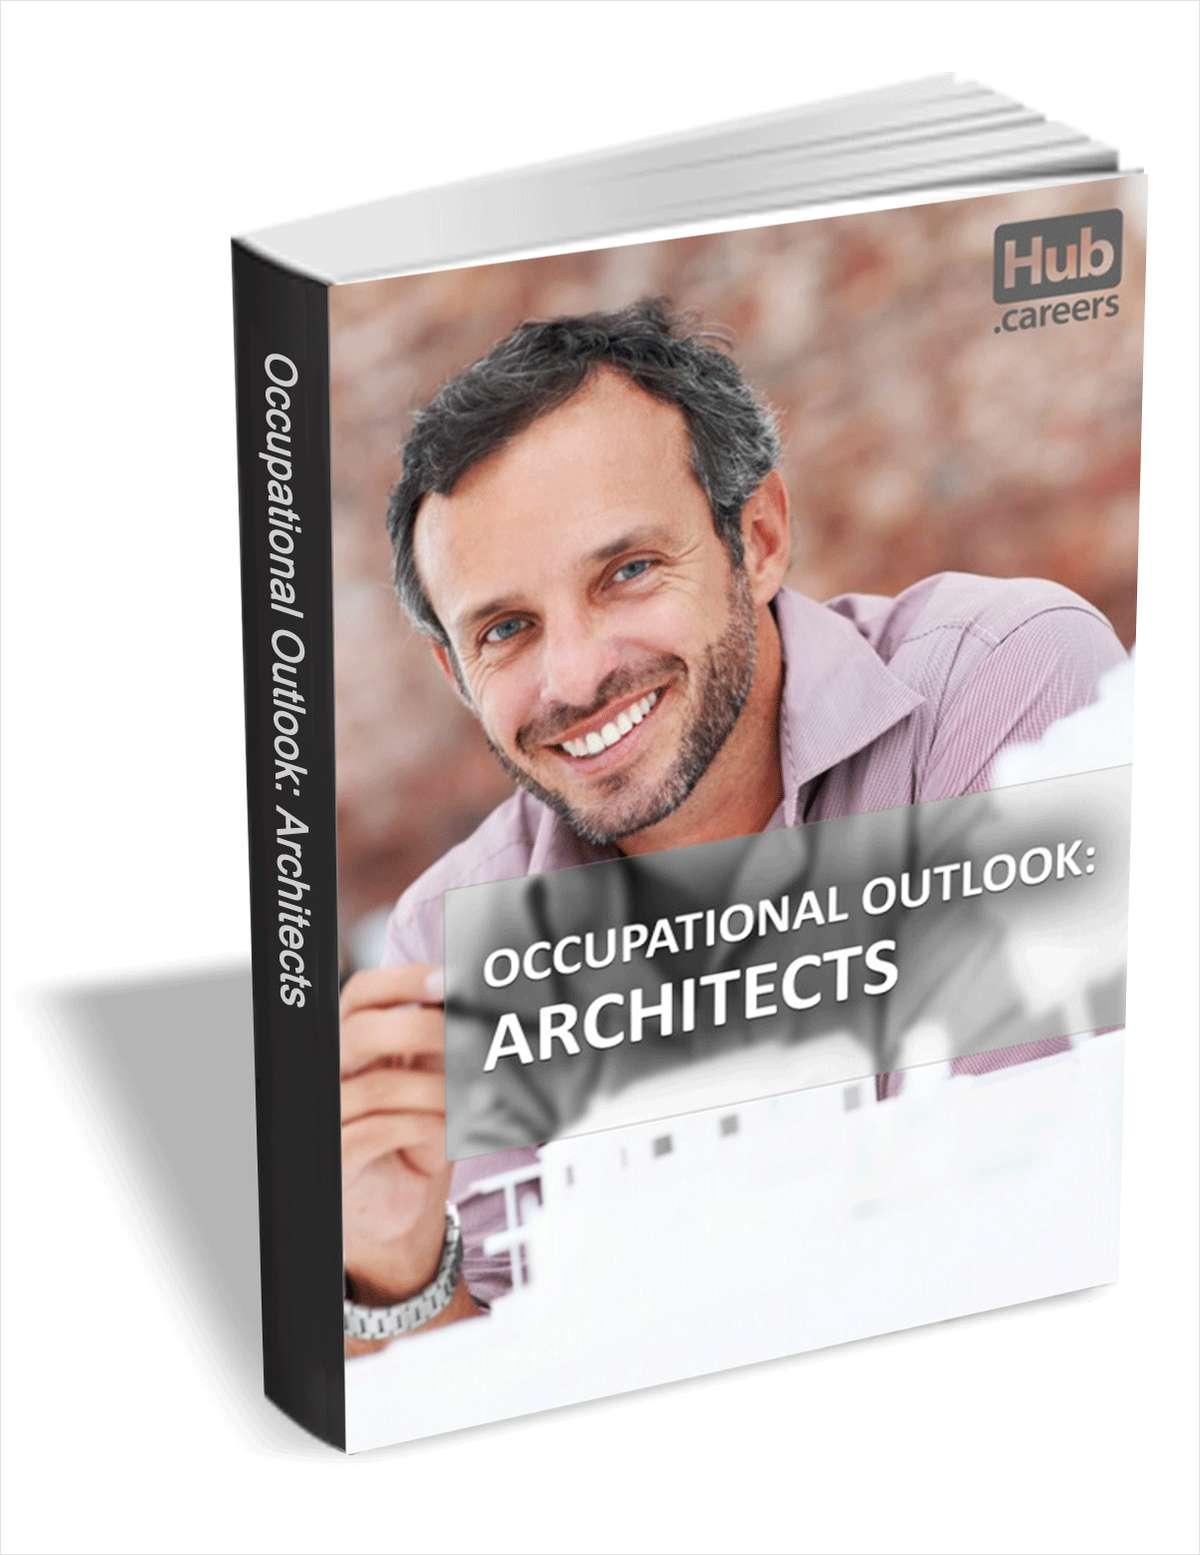 Architects - Occupational Outlook